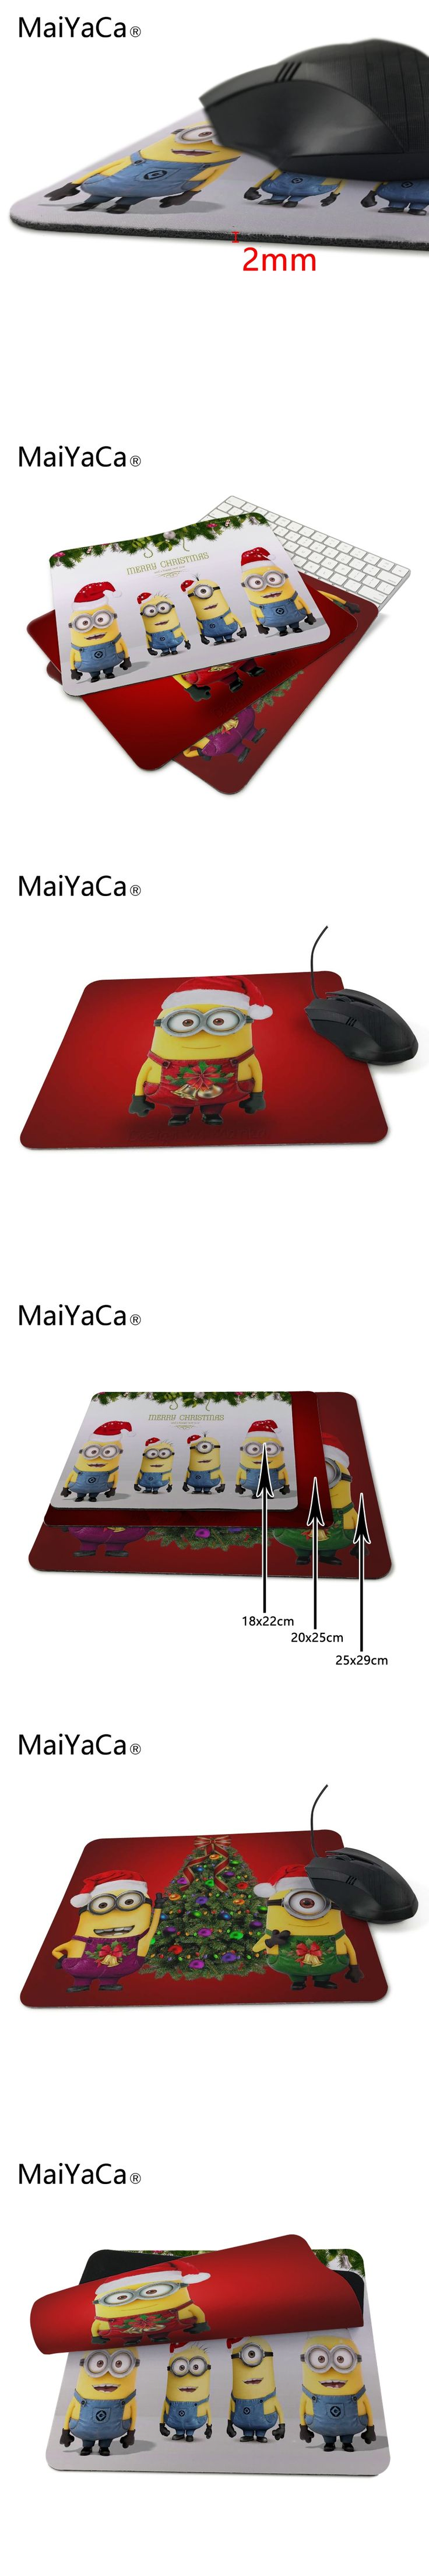 Hot stunning minions christmas minion wallpaper 18x22cm and 25x29cm size mouse pad Table mats are slippe Children love Gift